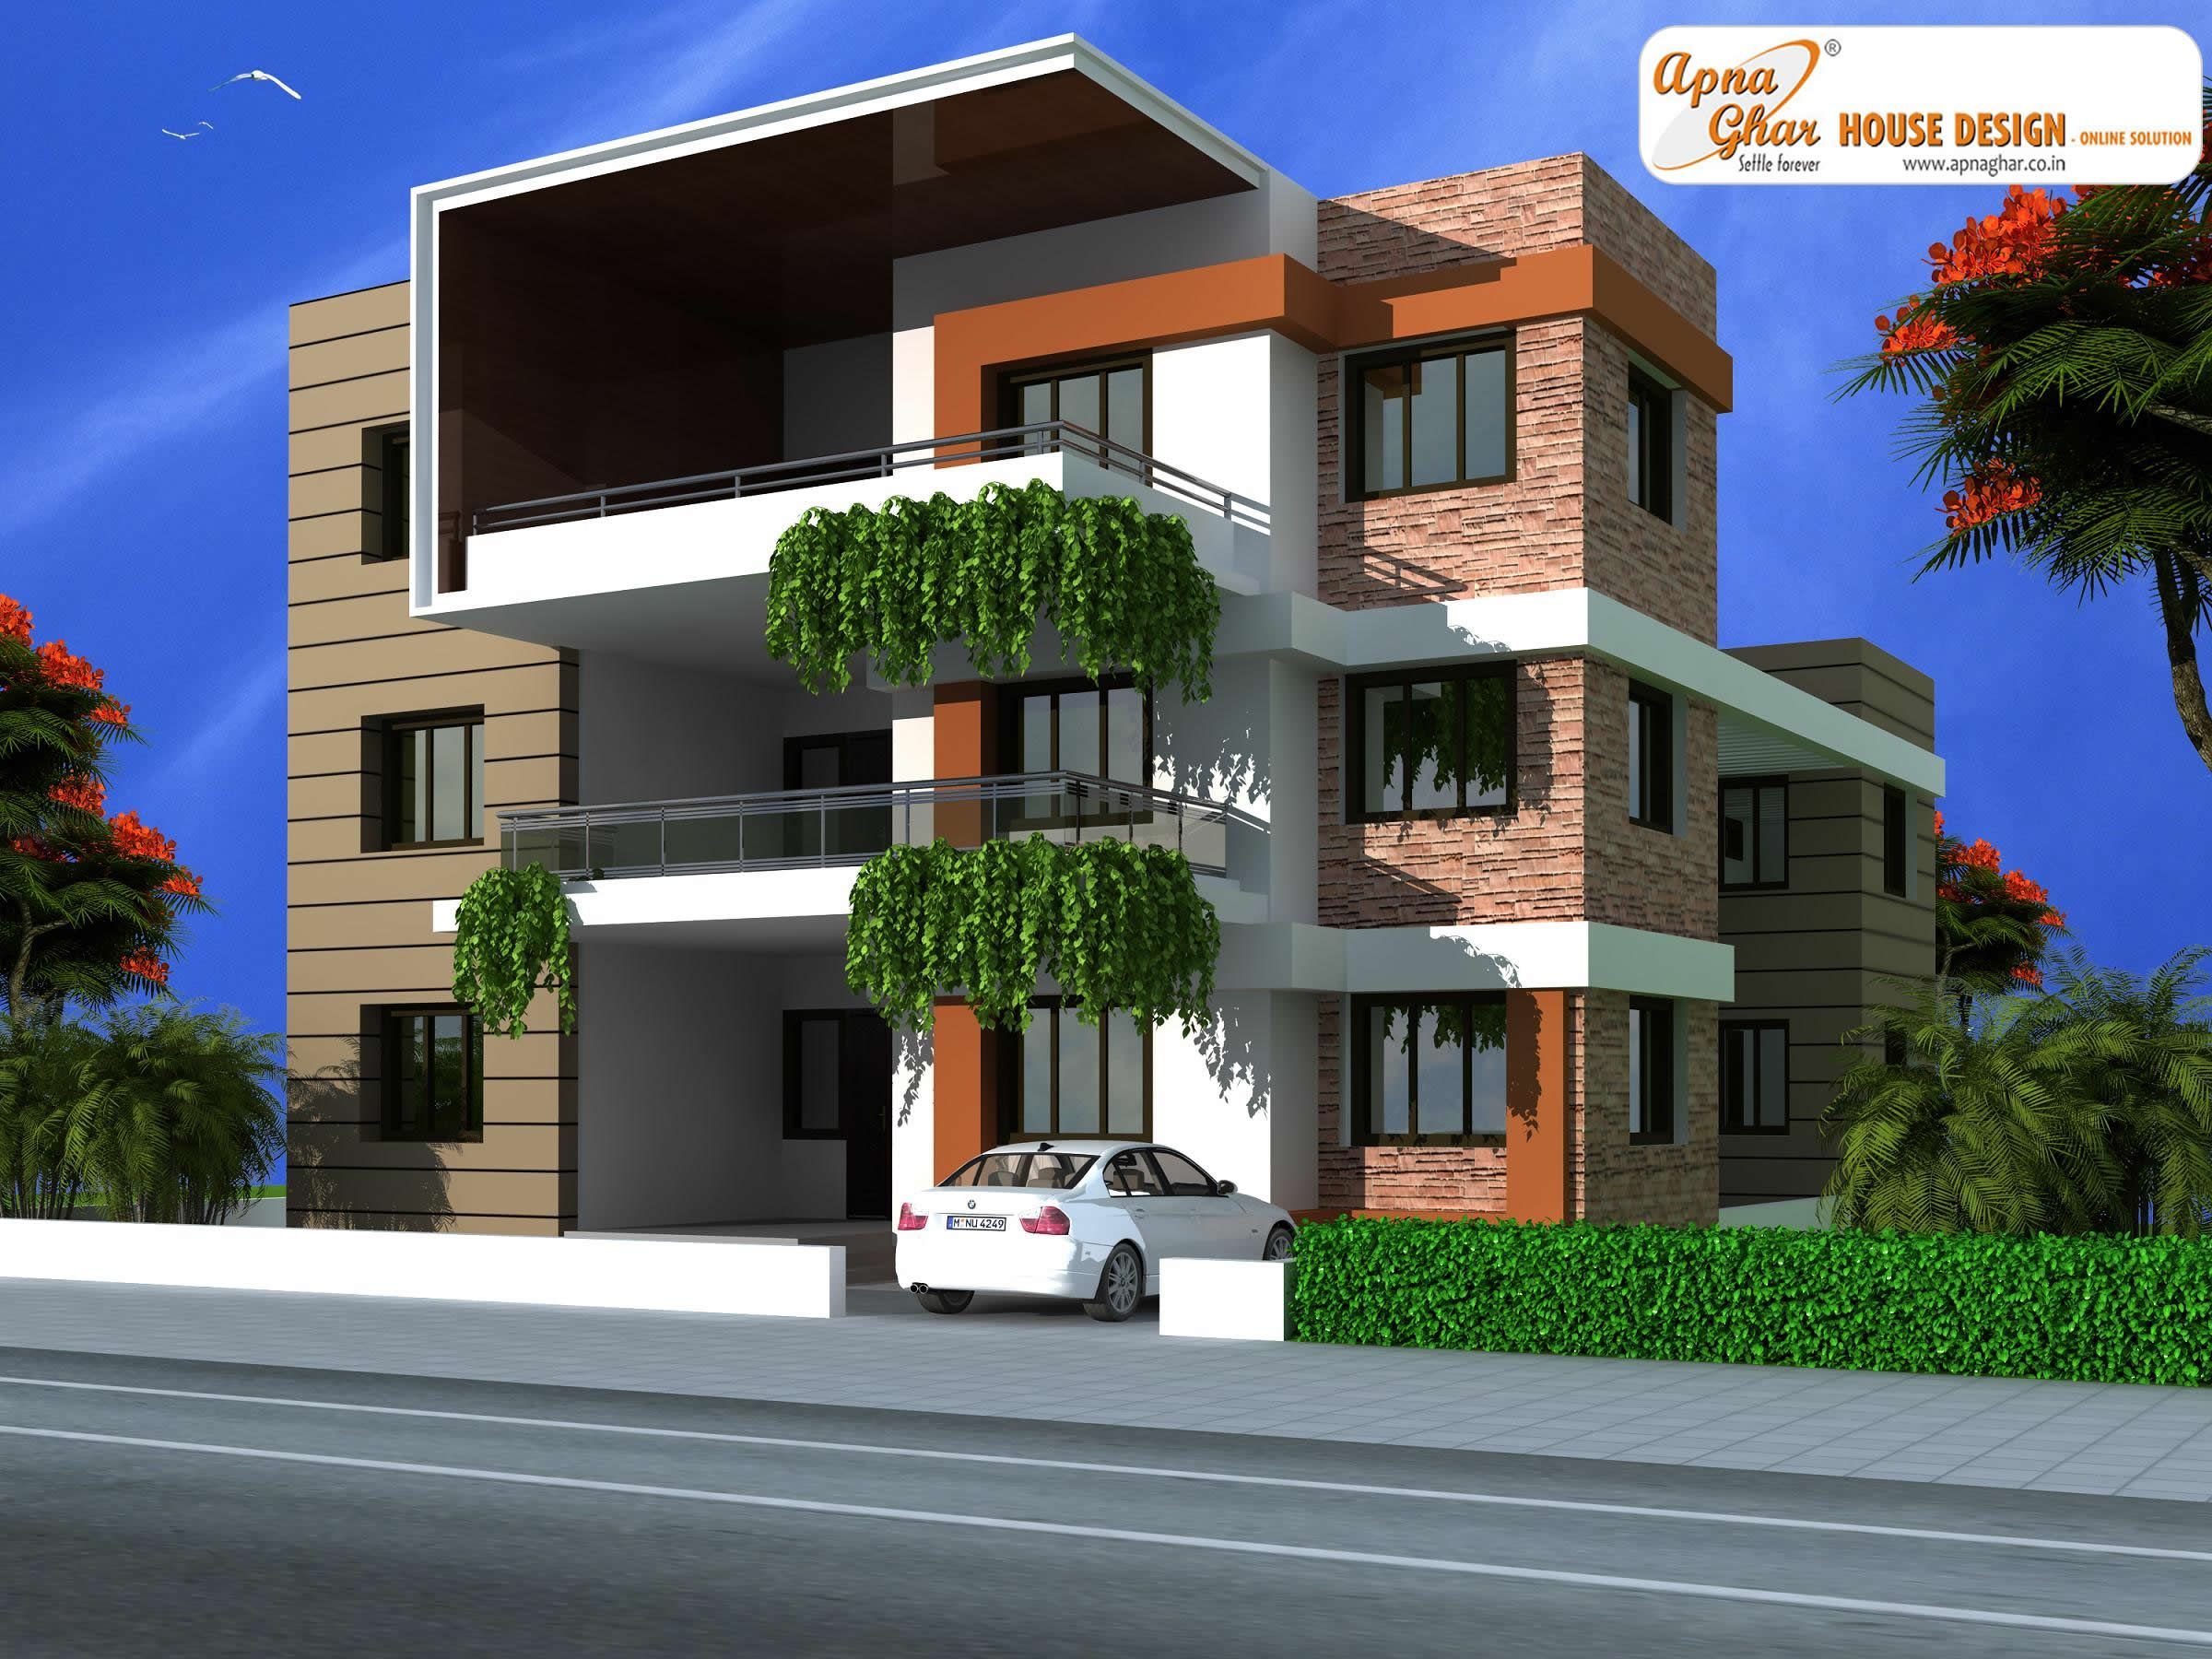 11 bedroom, modern triplex (3 floor) house design. area: 378 sq